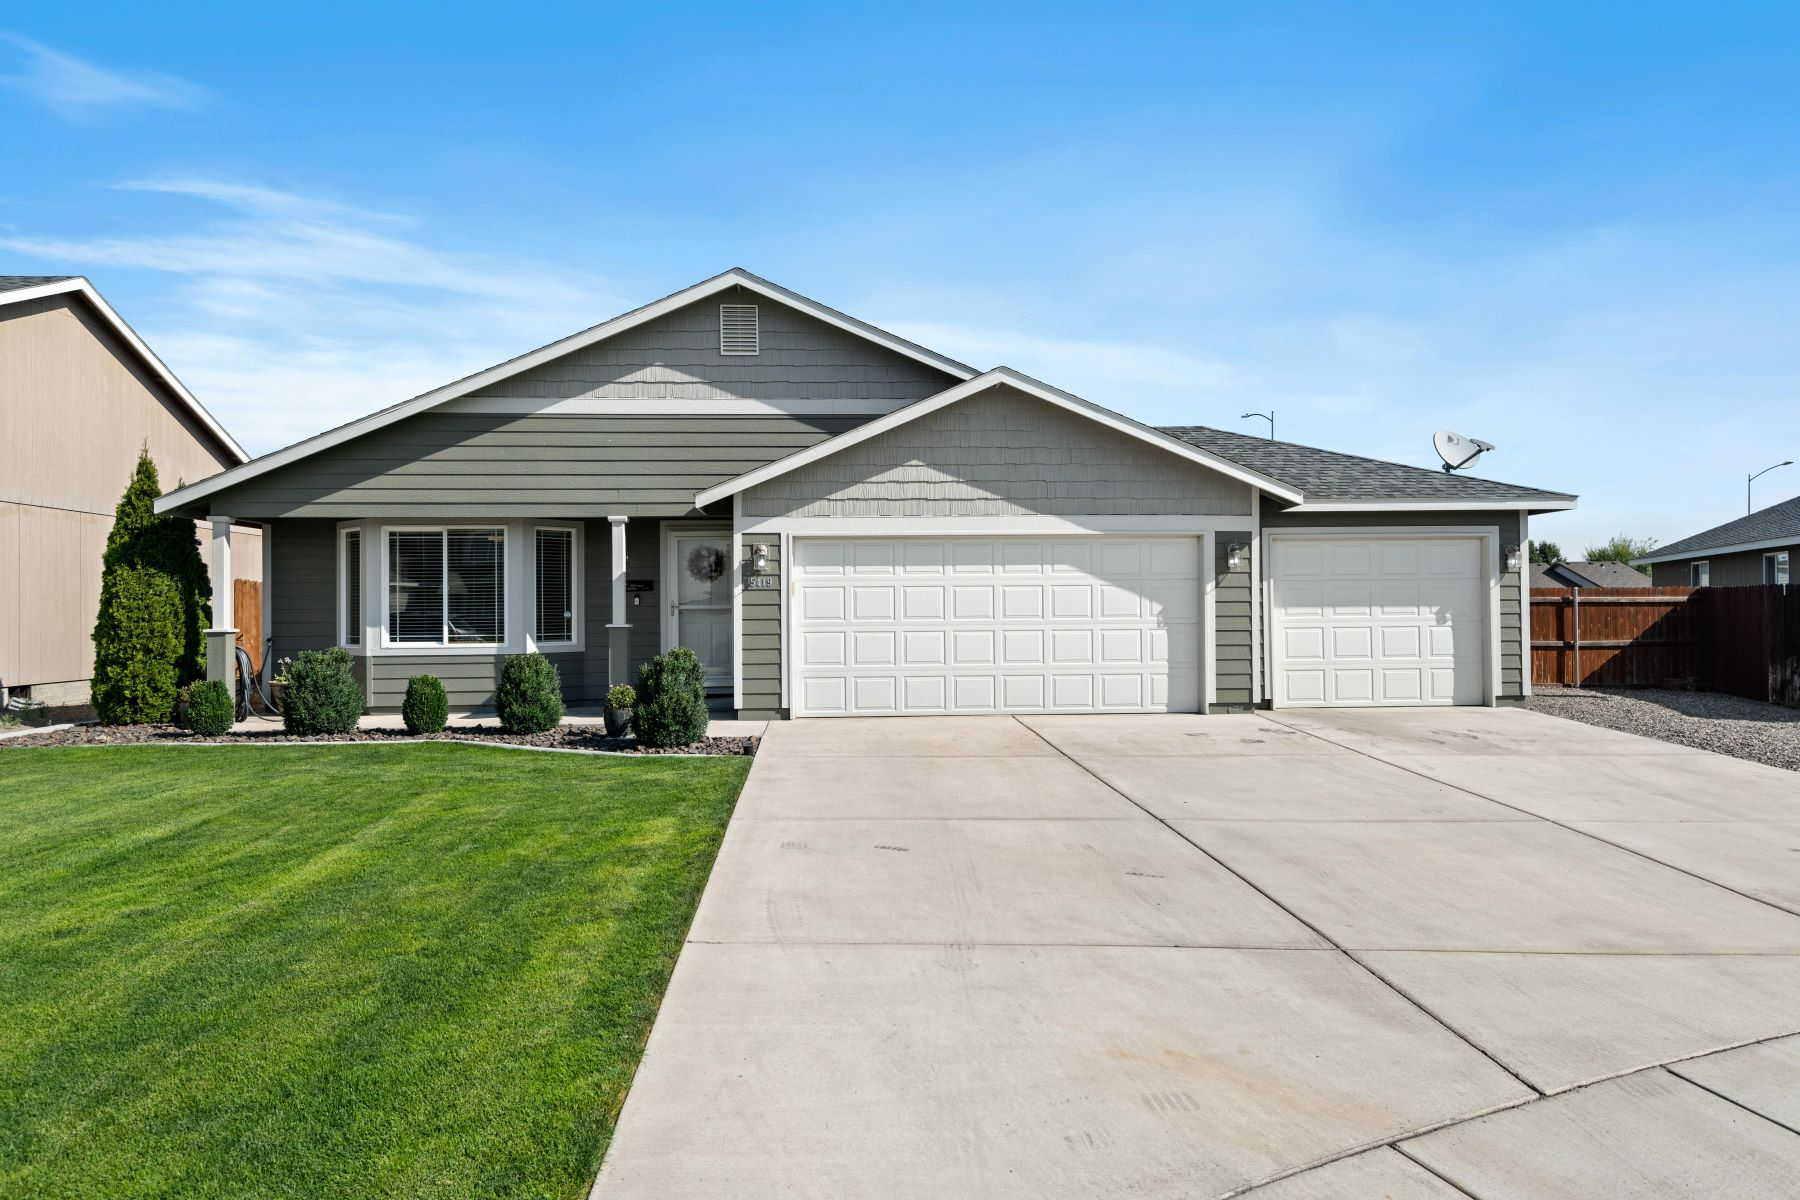 Single Family Homes for Sale at 12x40 Covered Patio w/ Hot Tub 5419 Austin Drive Pasco, Washington 99301 United States